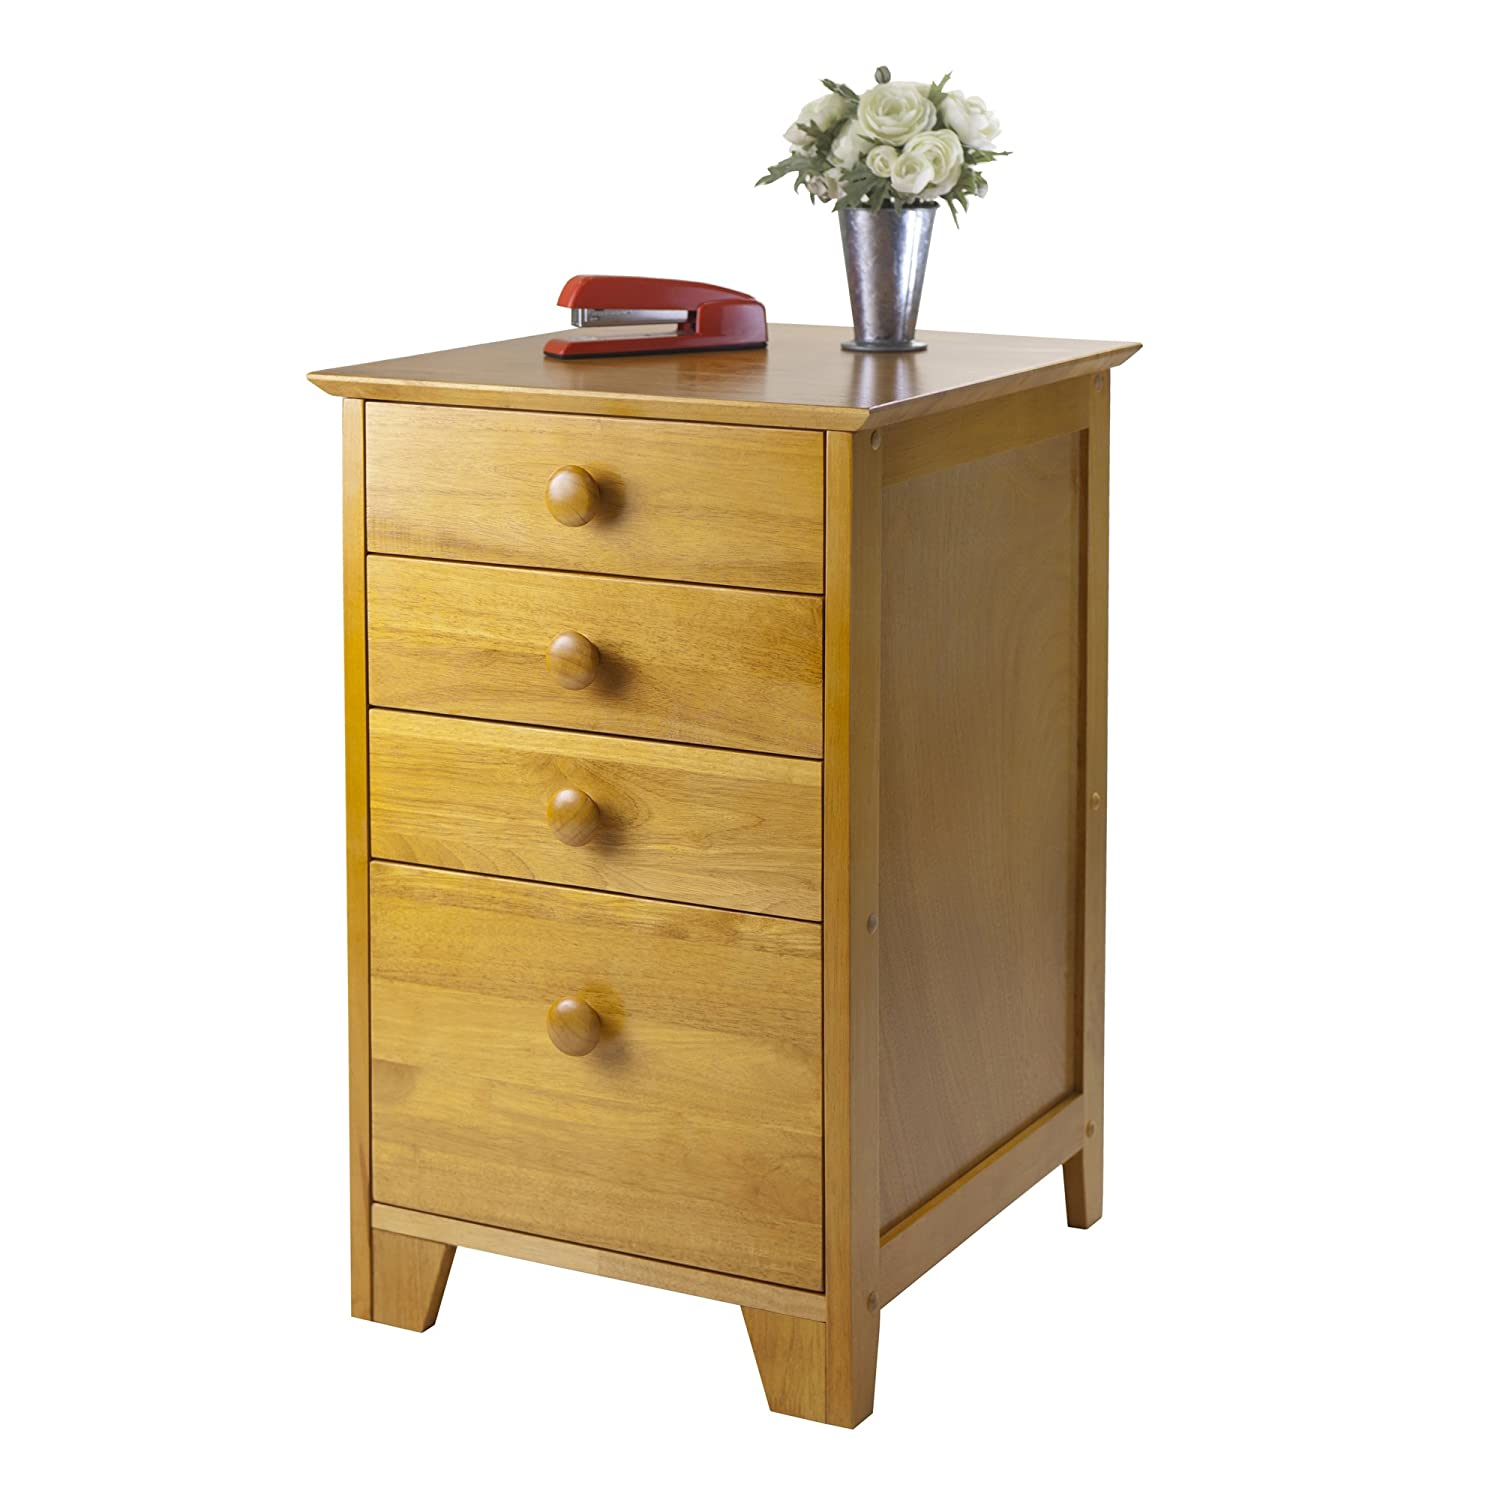 Amazon.com : Winsome Solid Wood 4 Drawer Lateral Wood File Cabinet In Honey  Pine : Maintenance Carts : Office Products